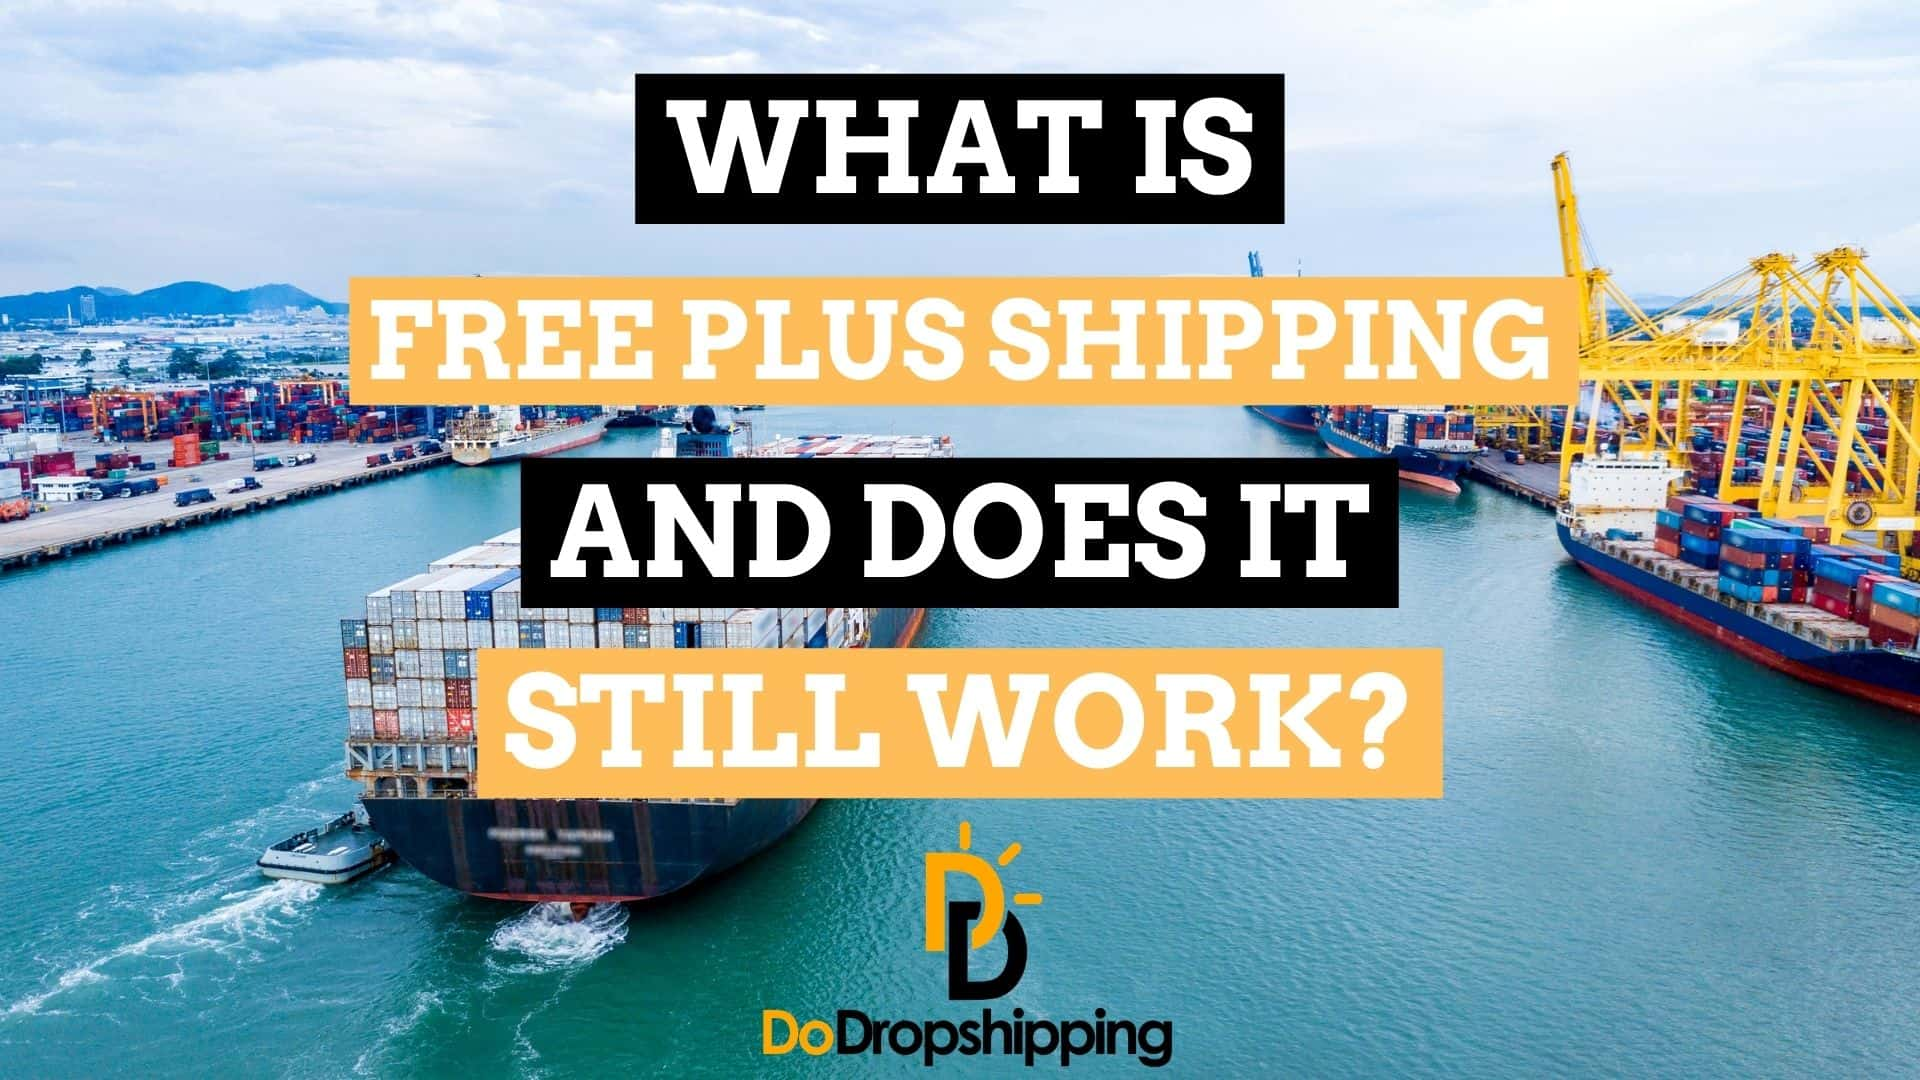 Free Plus Shipping Method | What is it and Does it Still Work in 2019?